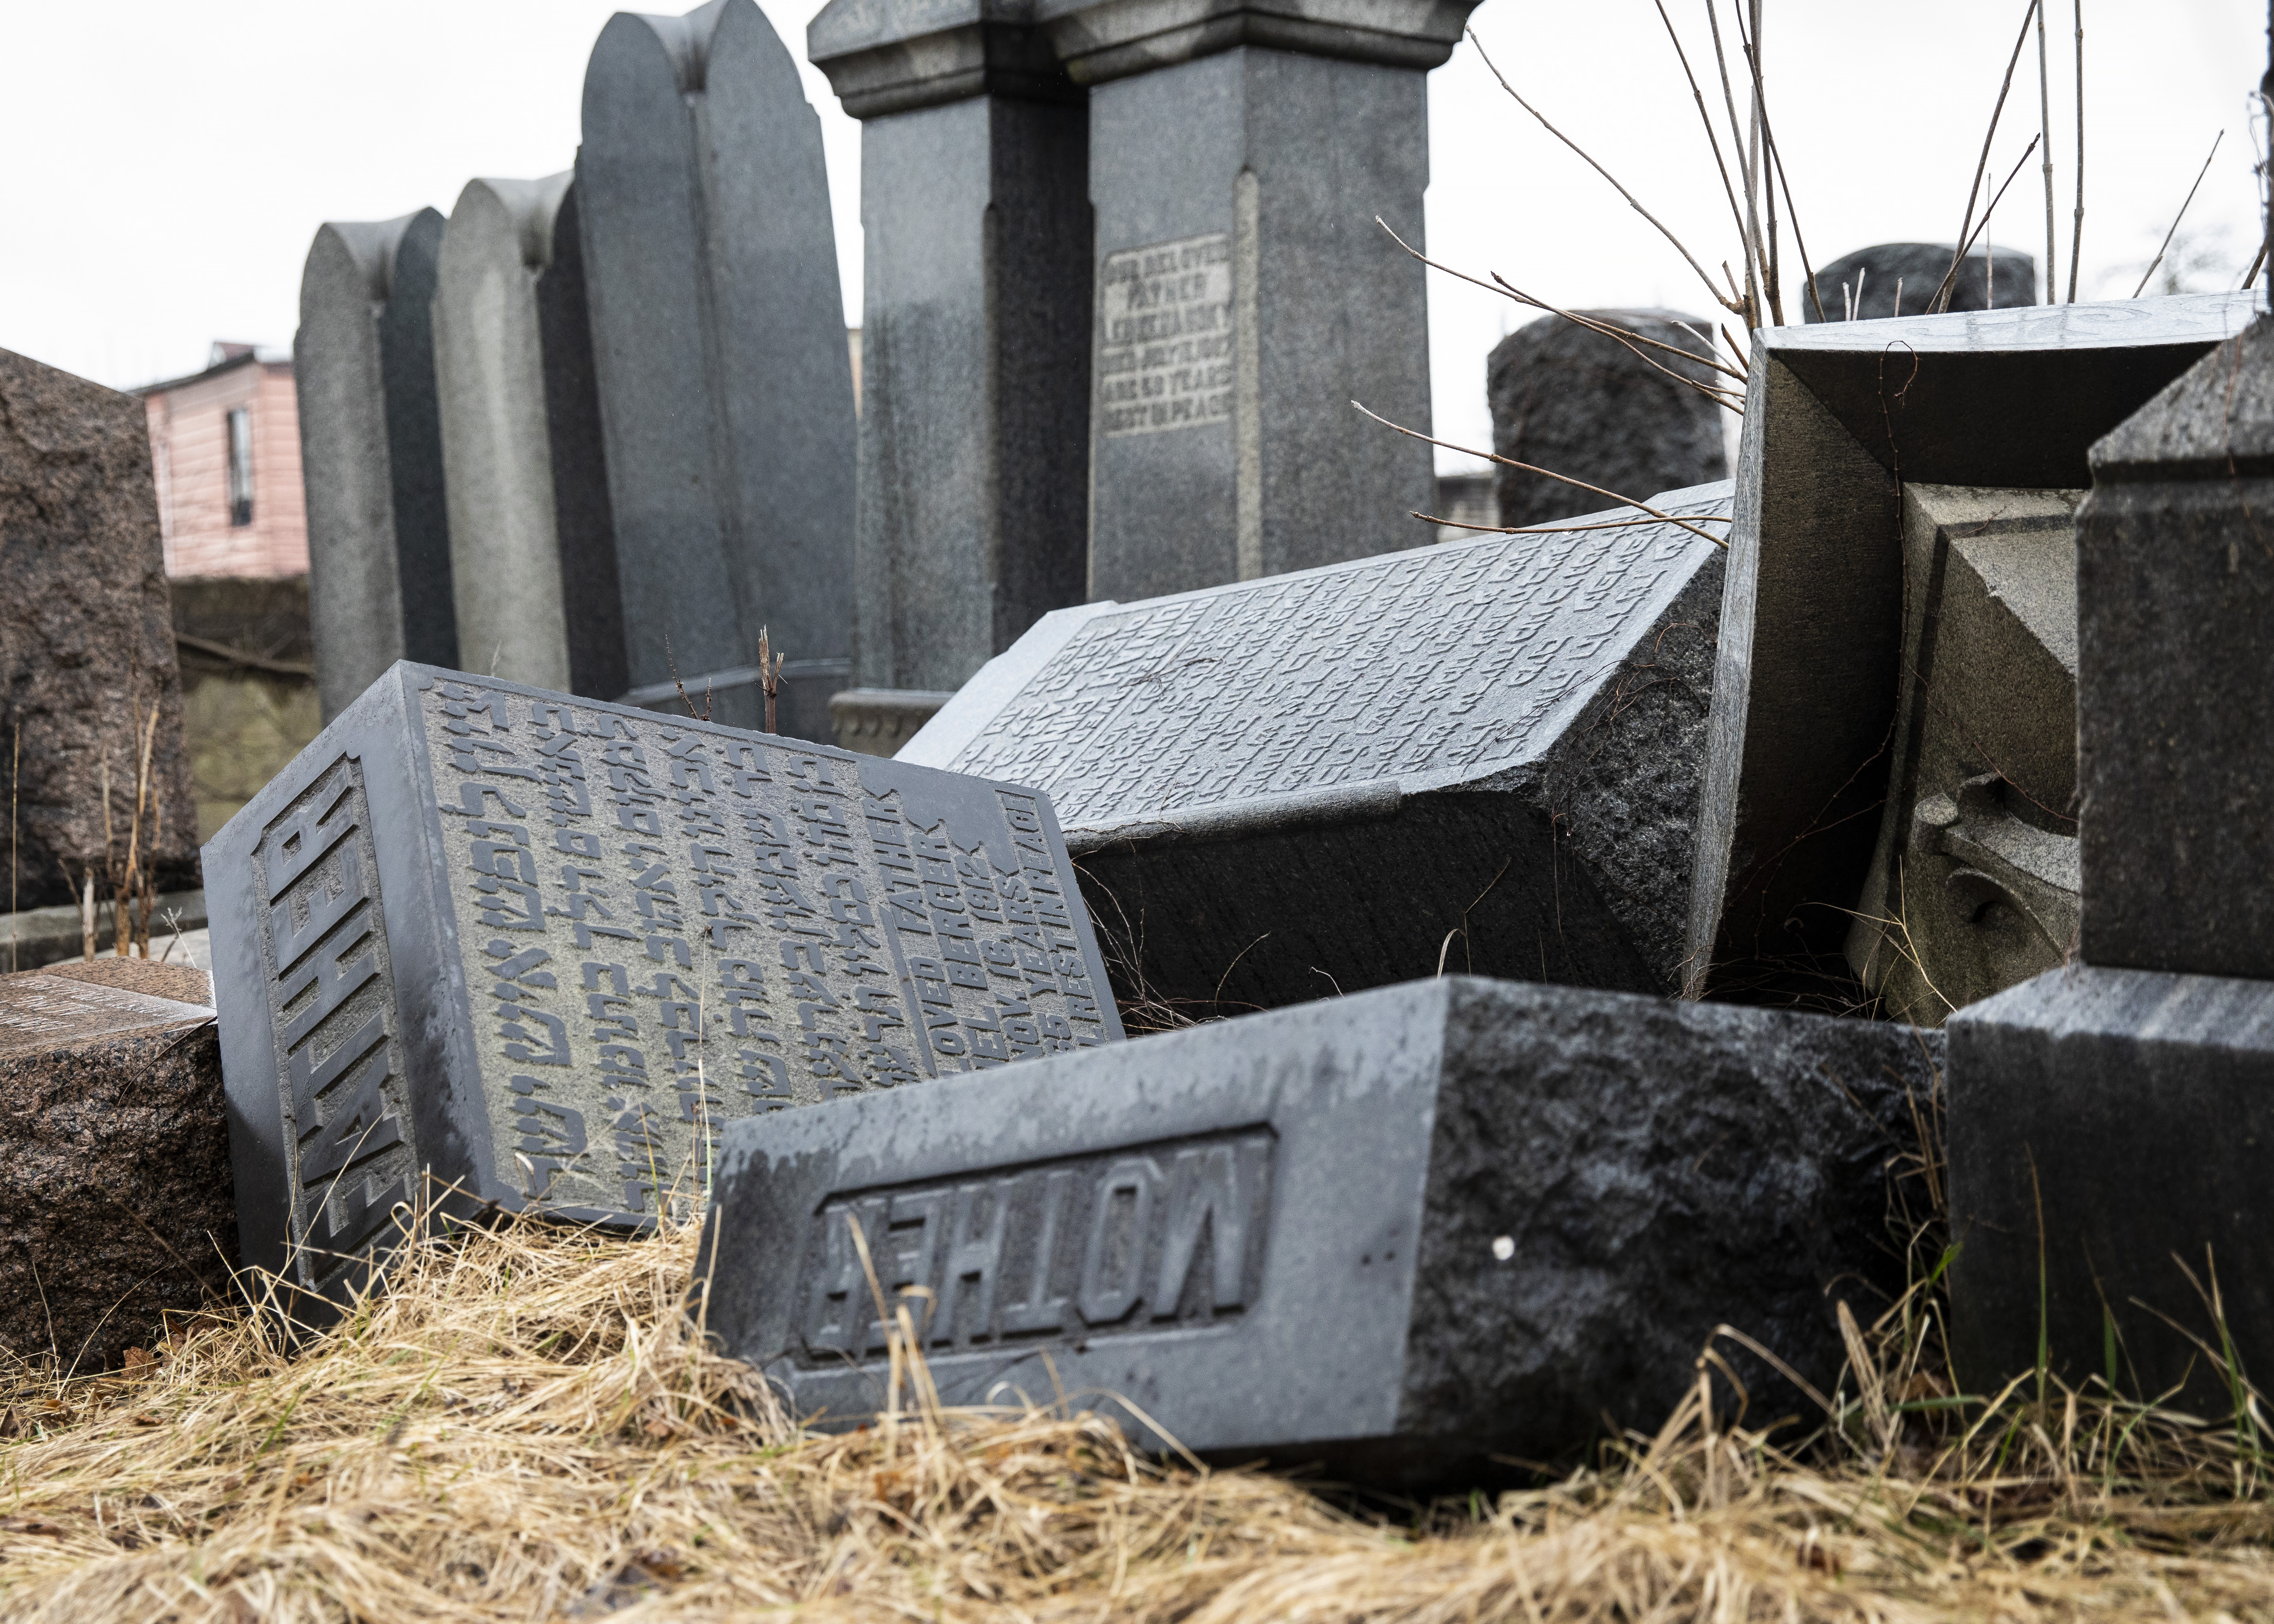 Damaged headstones sit in the Jewish cemetery within the boundaries of Oak Woods Cemetery on Chicago's South Side.